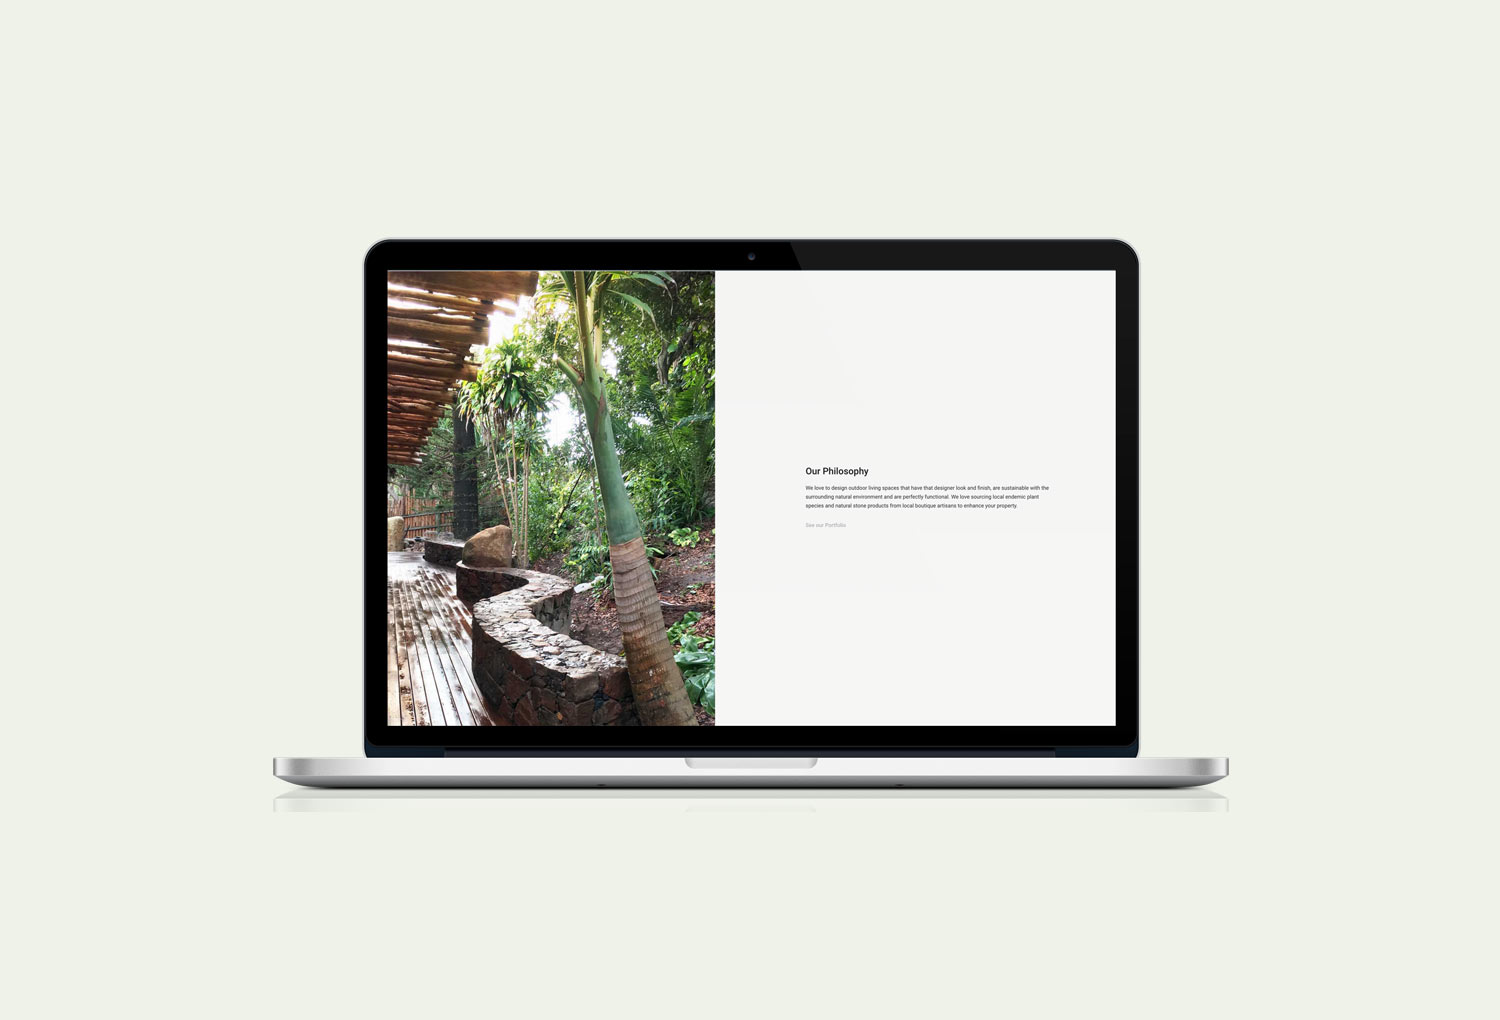 Gondwana Landscaping and Stone Projects Philosophy Page